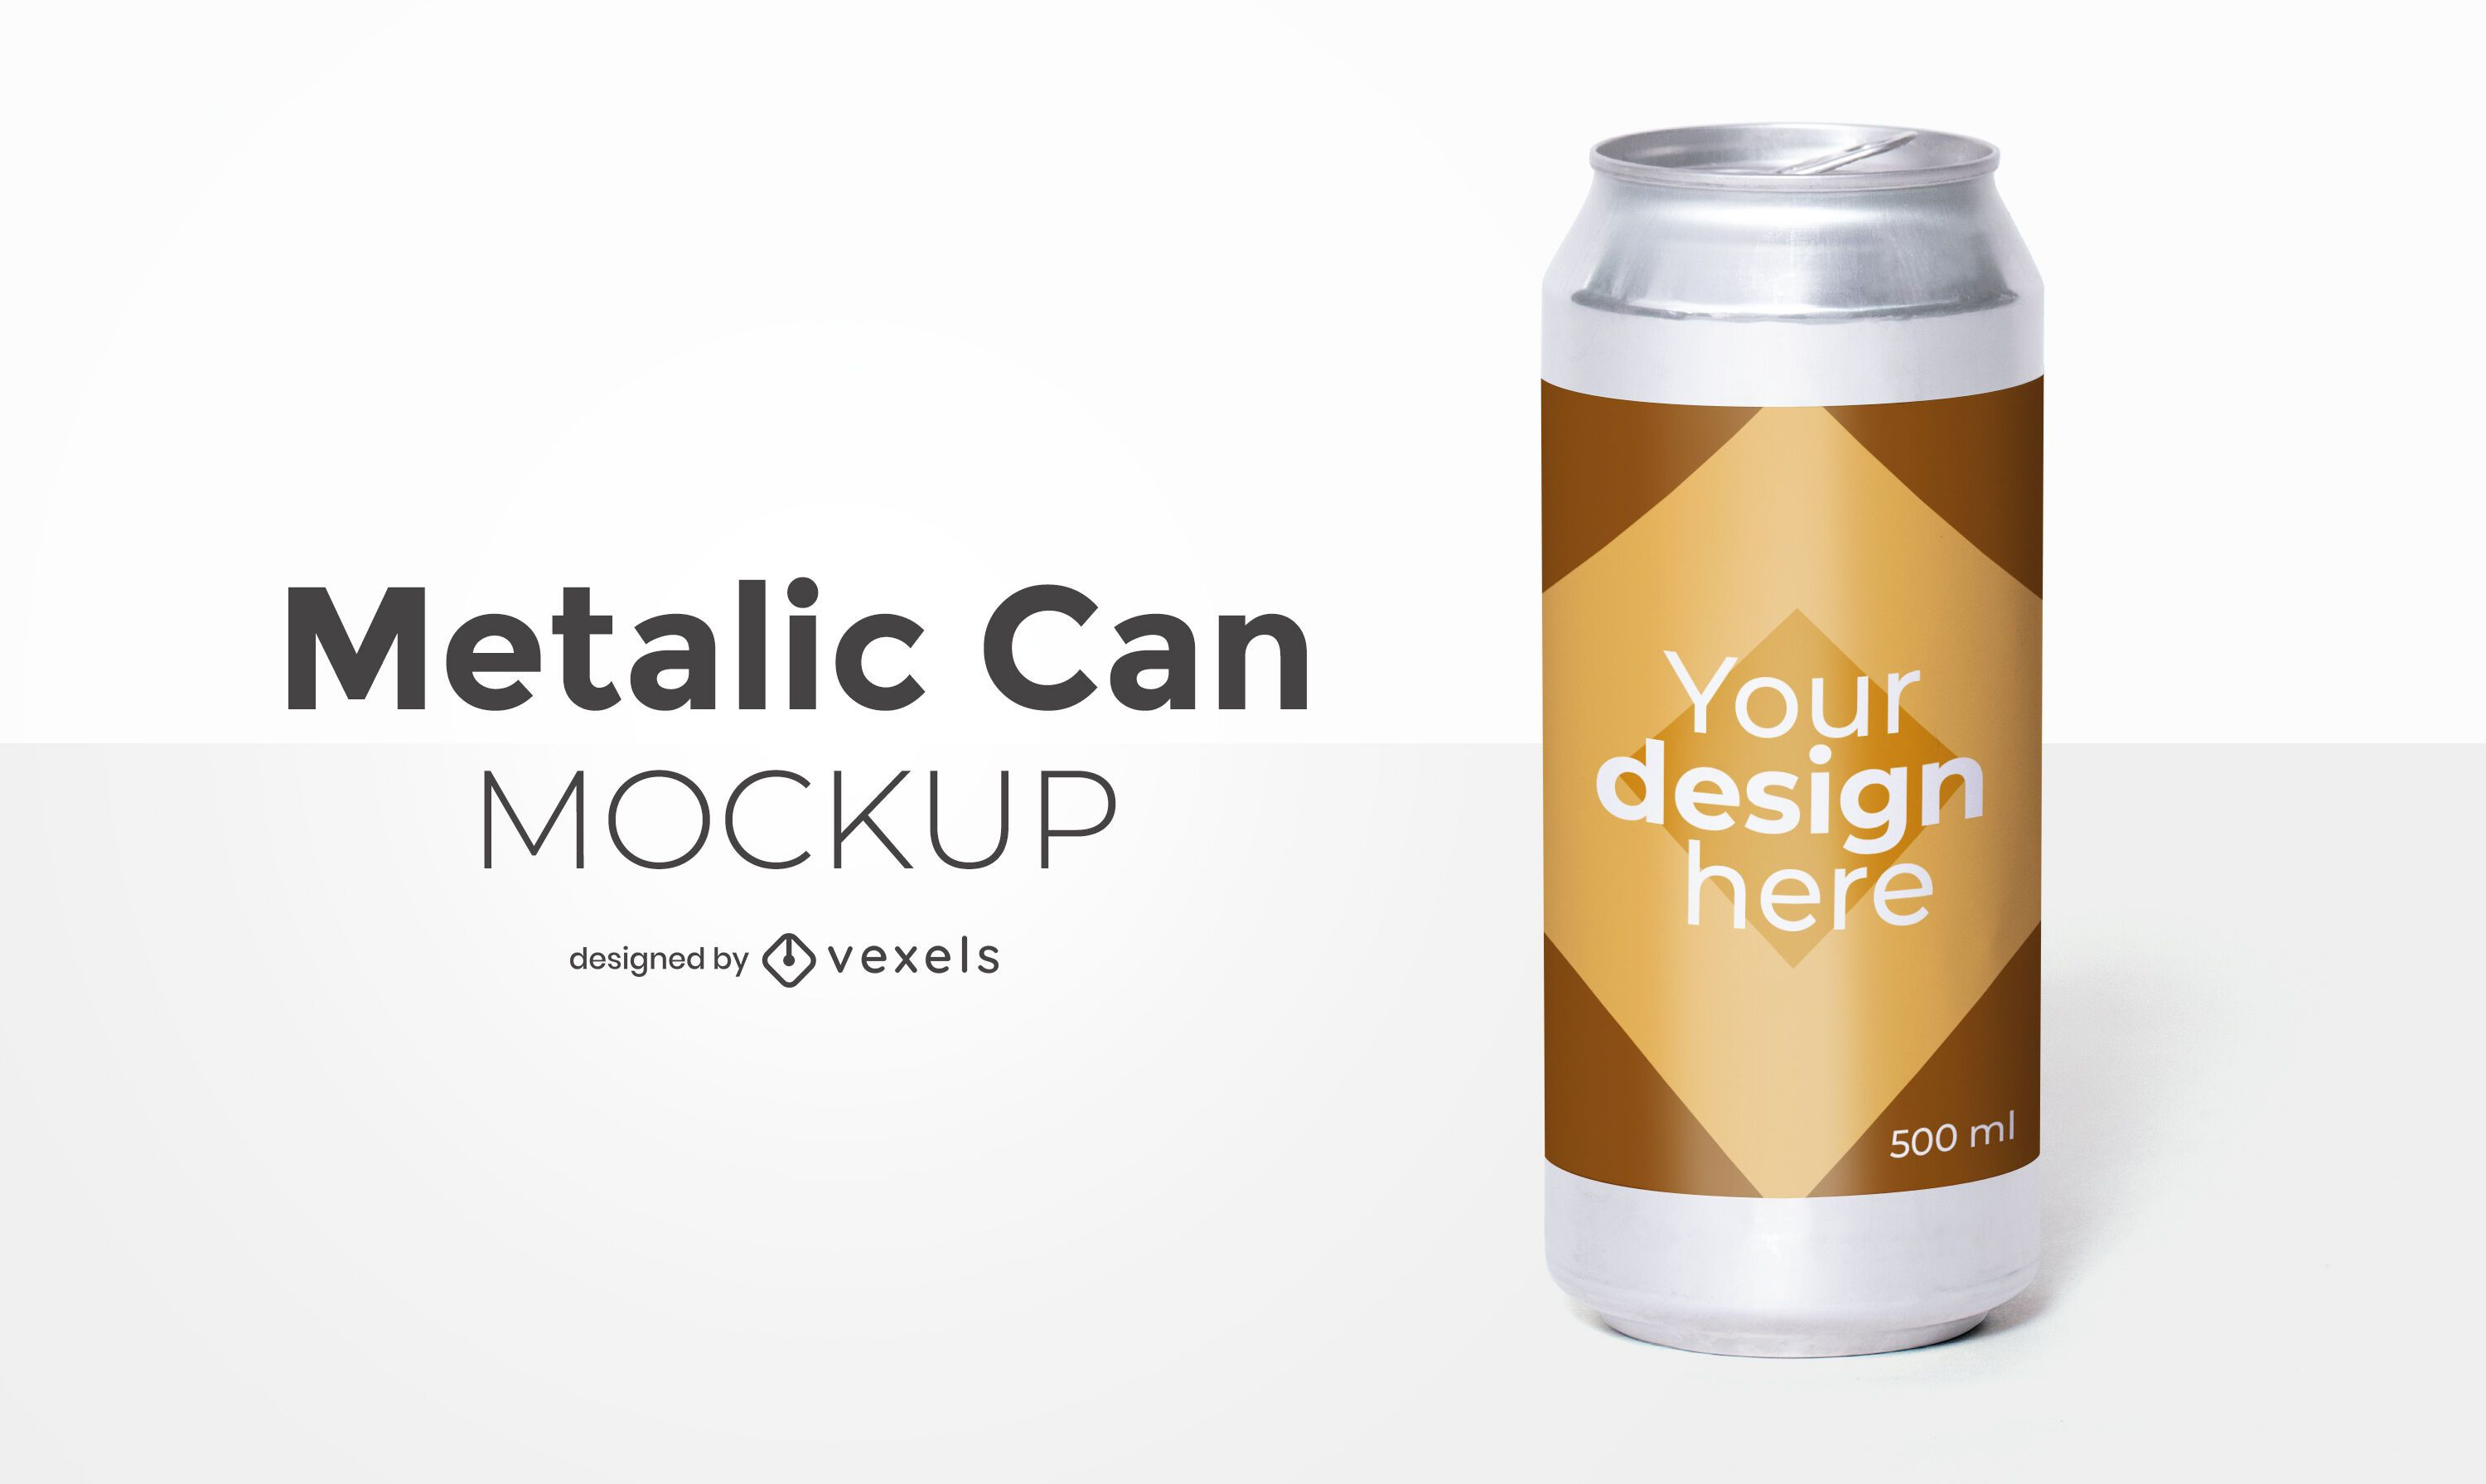 Tin Can Packaging Mockup Design